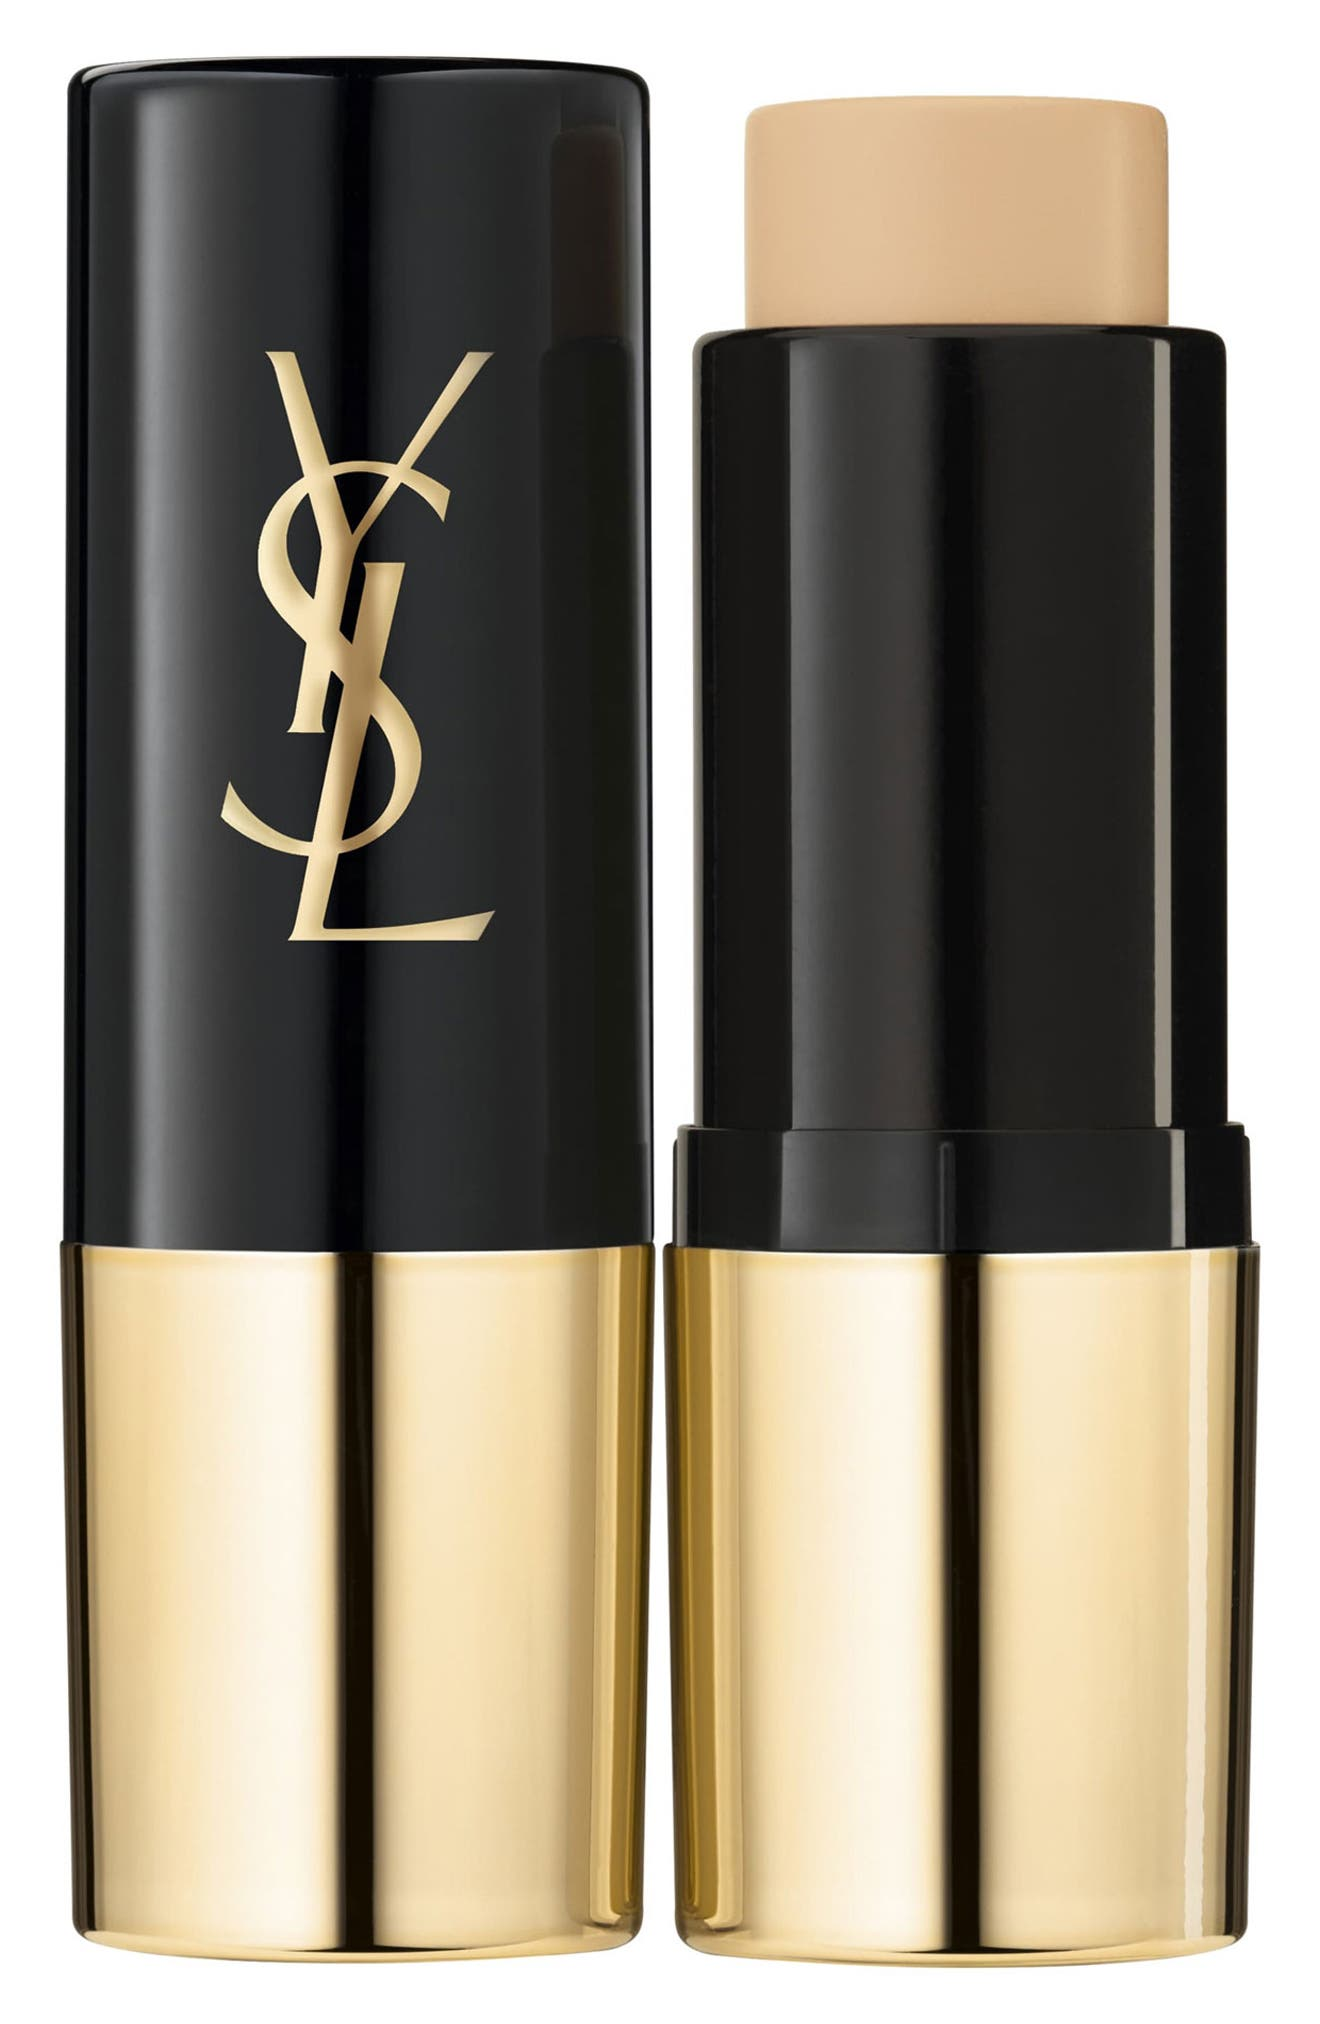 Yves Saint Laurent All Hours Foundation Stick - B30 Almond